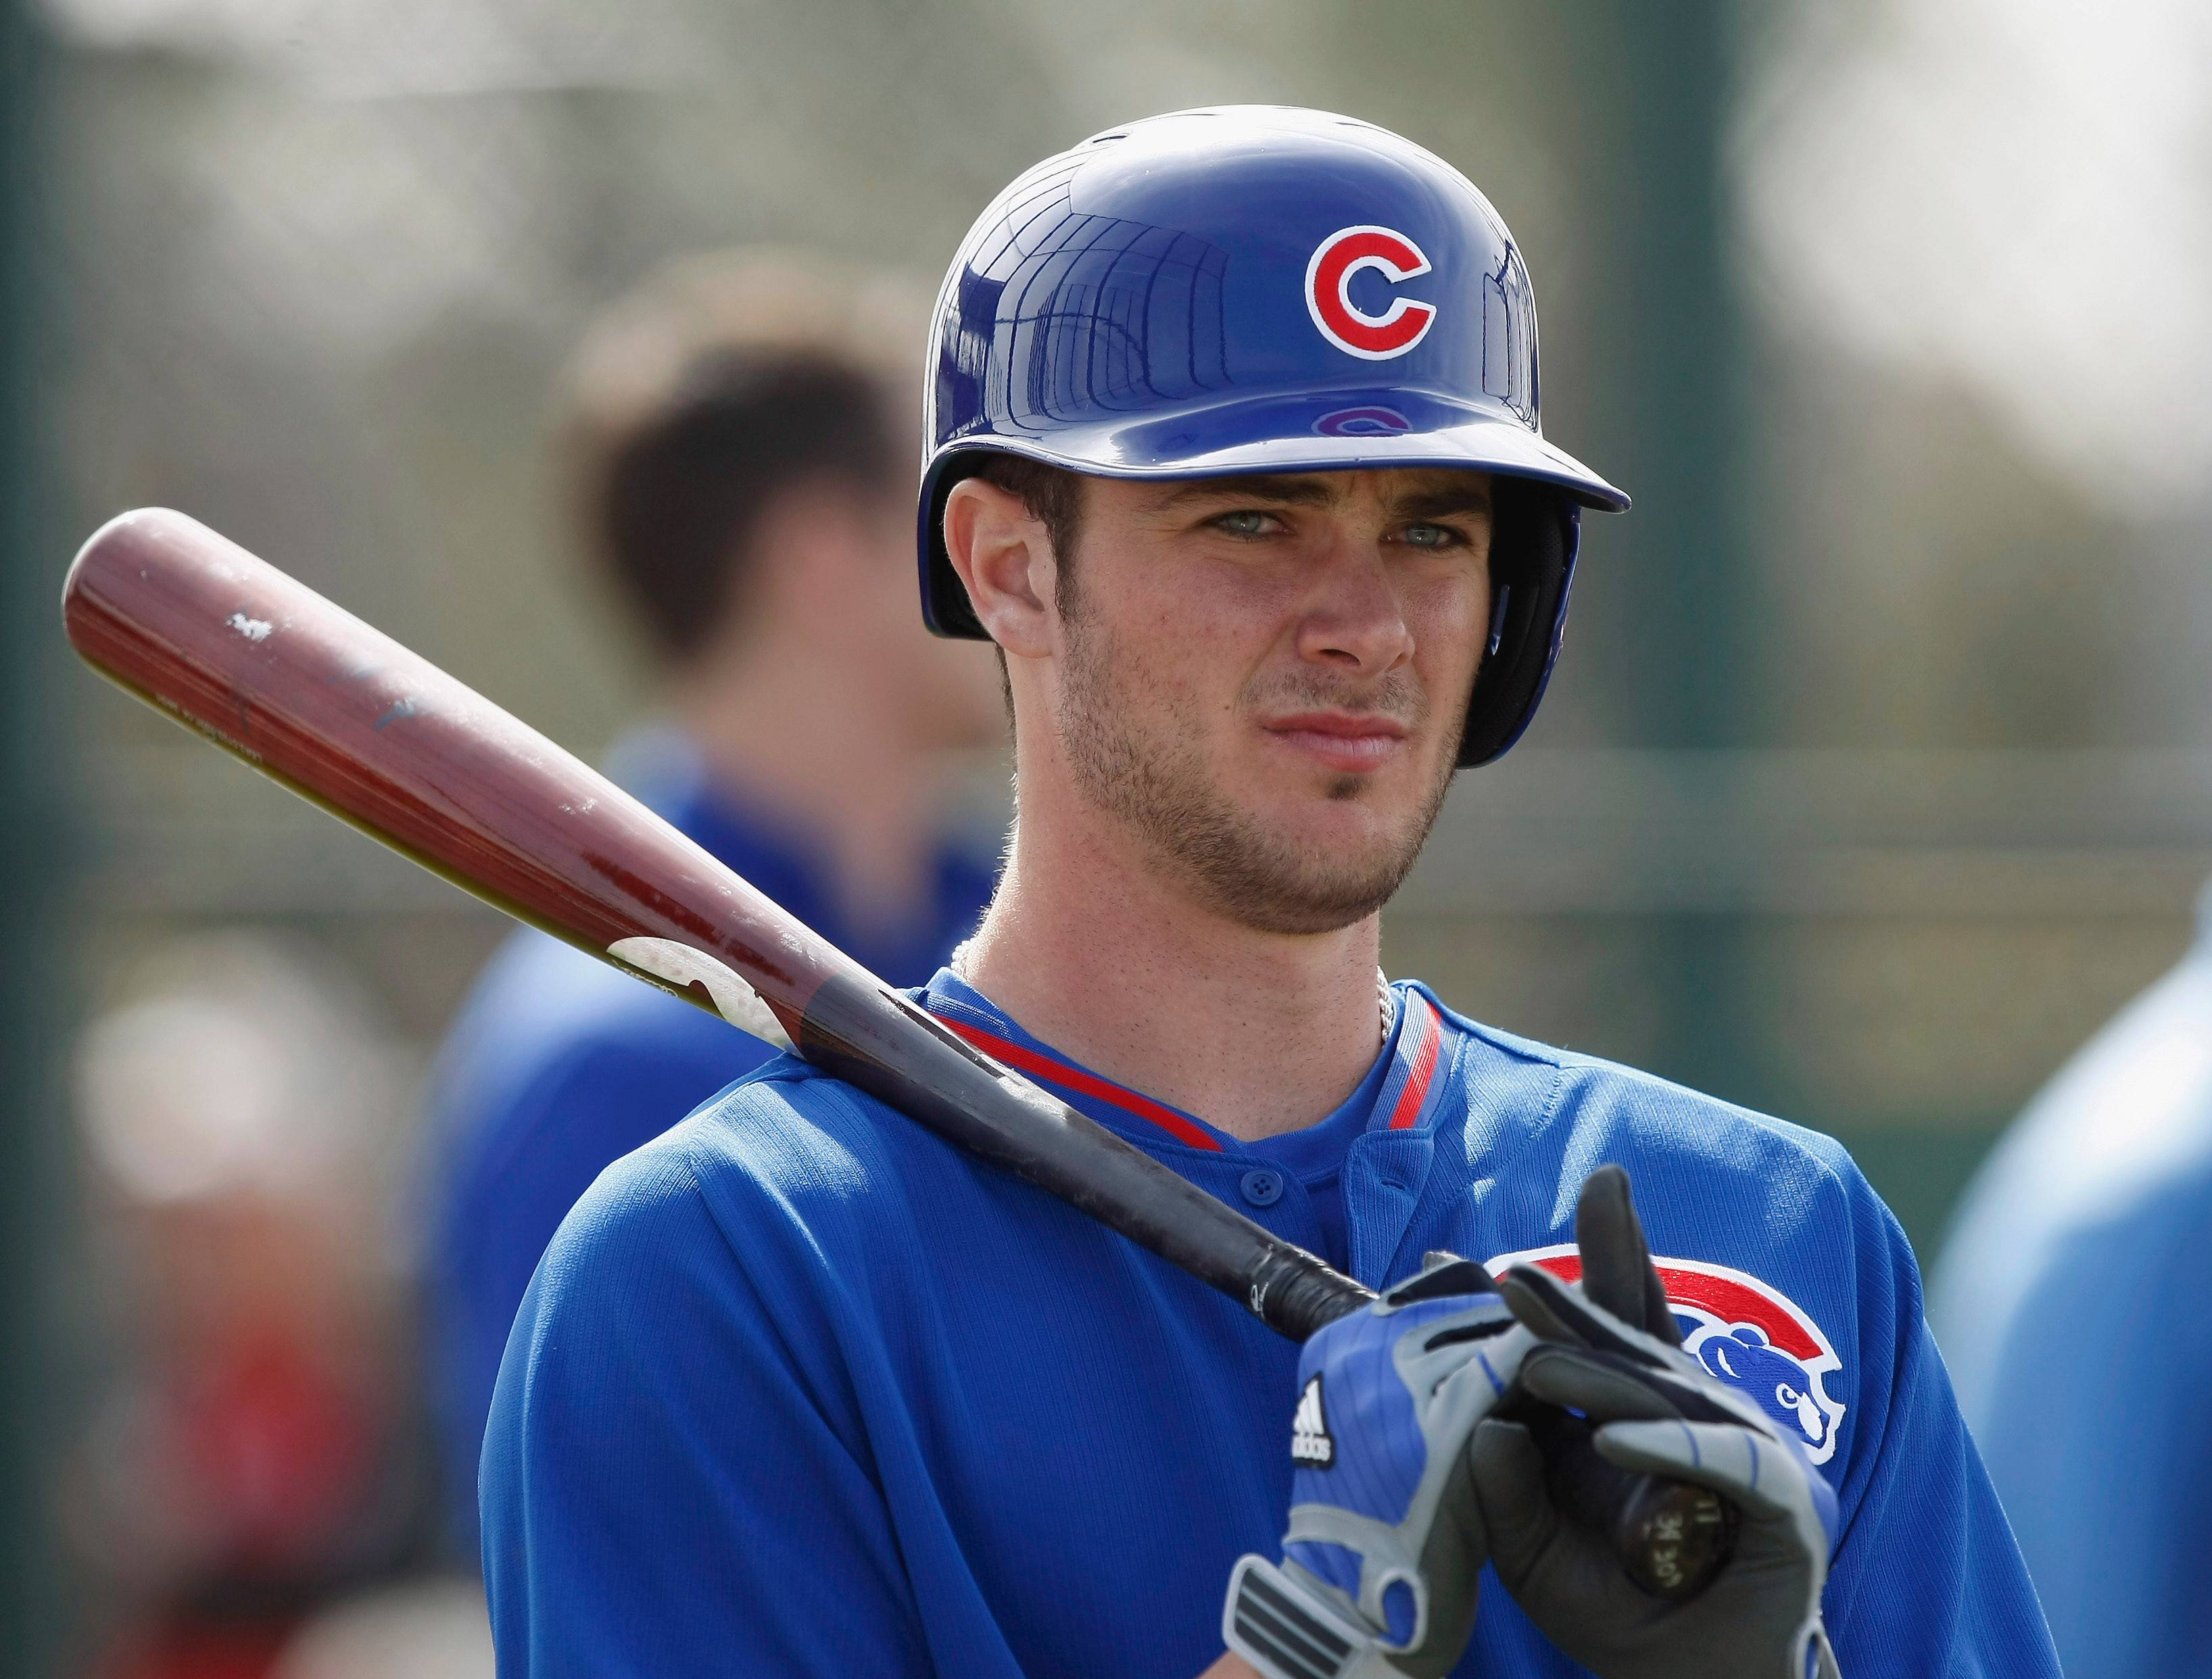 Cubs prospects Bryant, Baez focus on the present